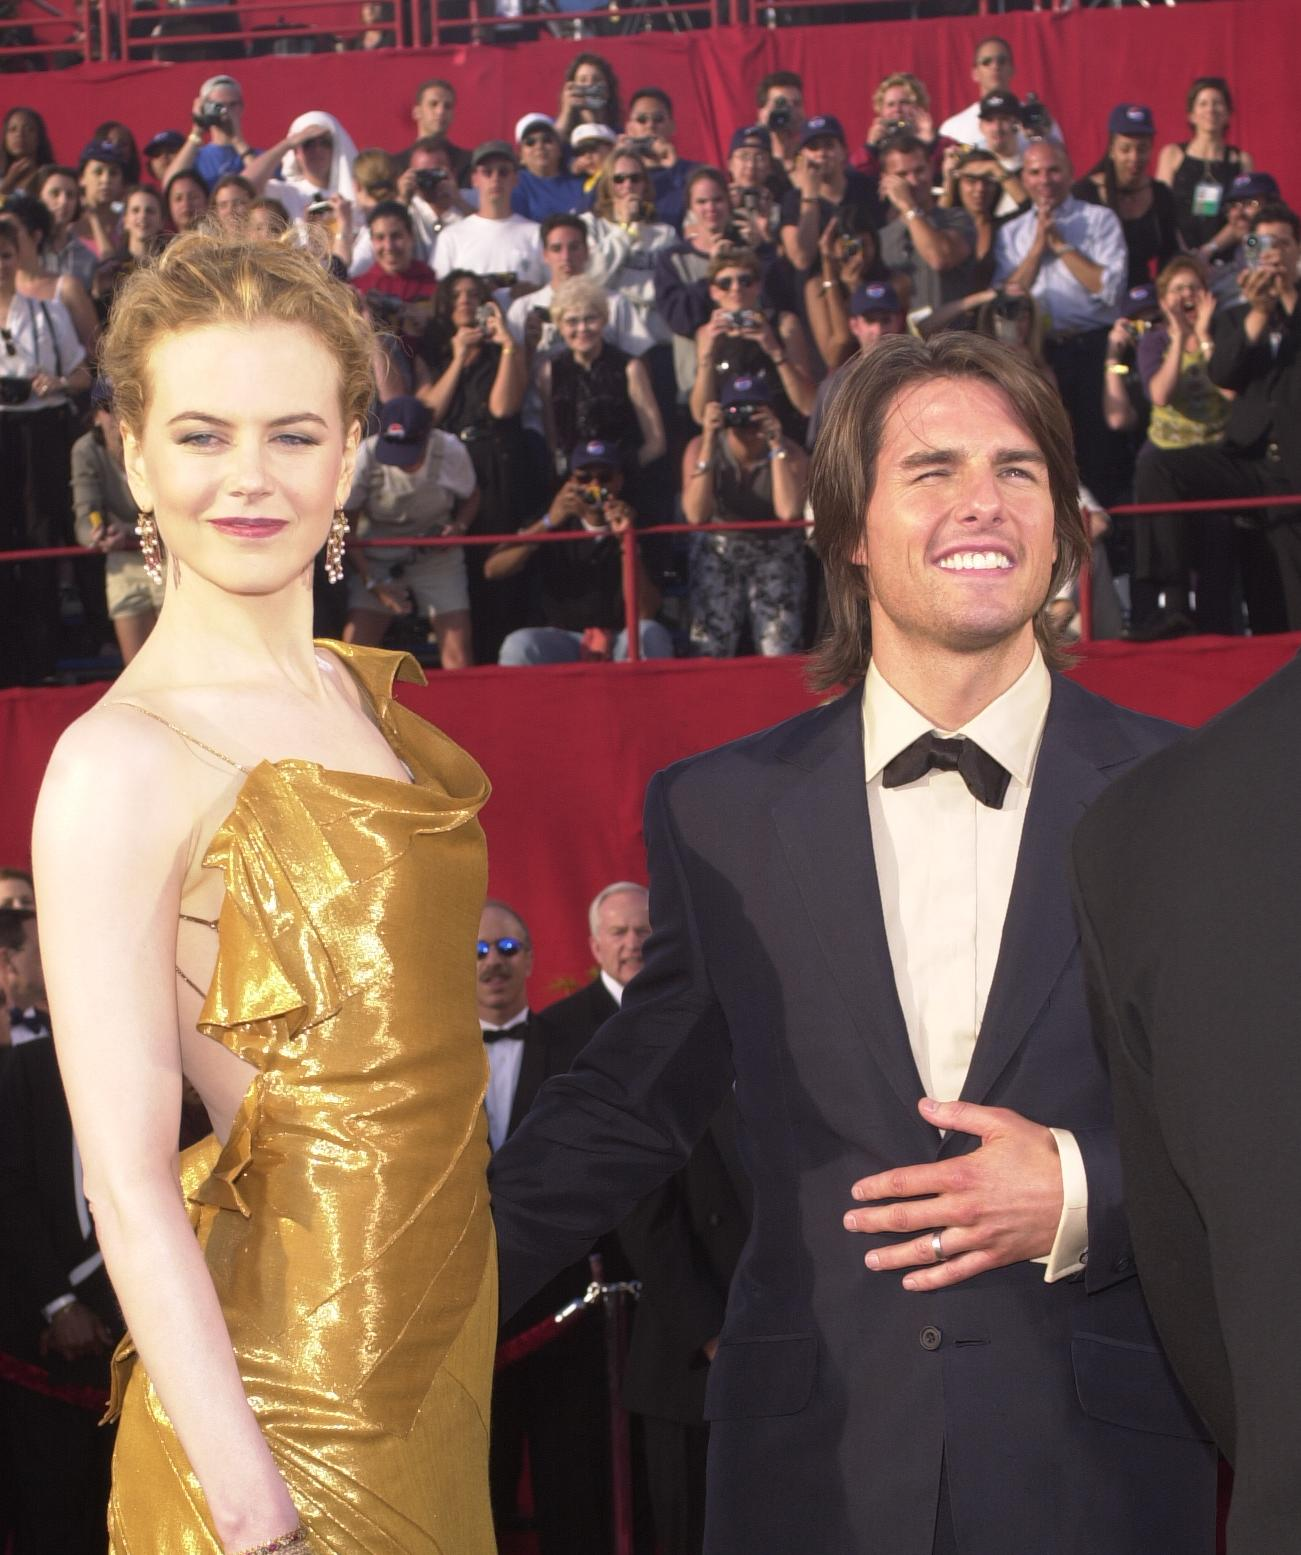 Tom Cruise and Nicole Kidman arrive at the 72nd Annual Academy Awards on March 26, 2000, in Los Angeles, CA. Cruise and Kidman, one of the Hollywood's best-known couples, announced February 5, 2001, that they are separating after more than a decade of marriage (Source: Dan Callister/Newsmakers)